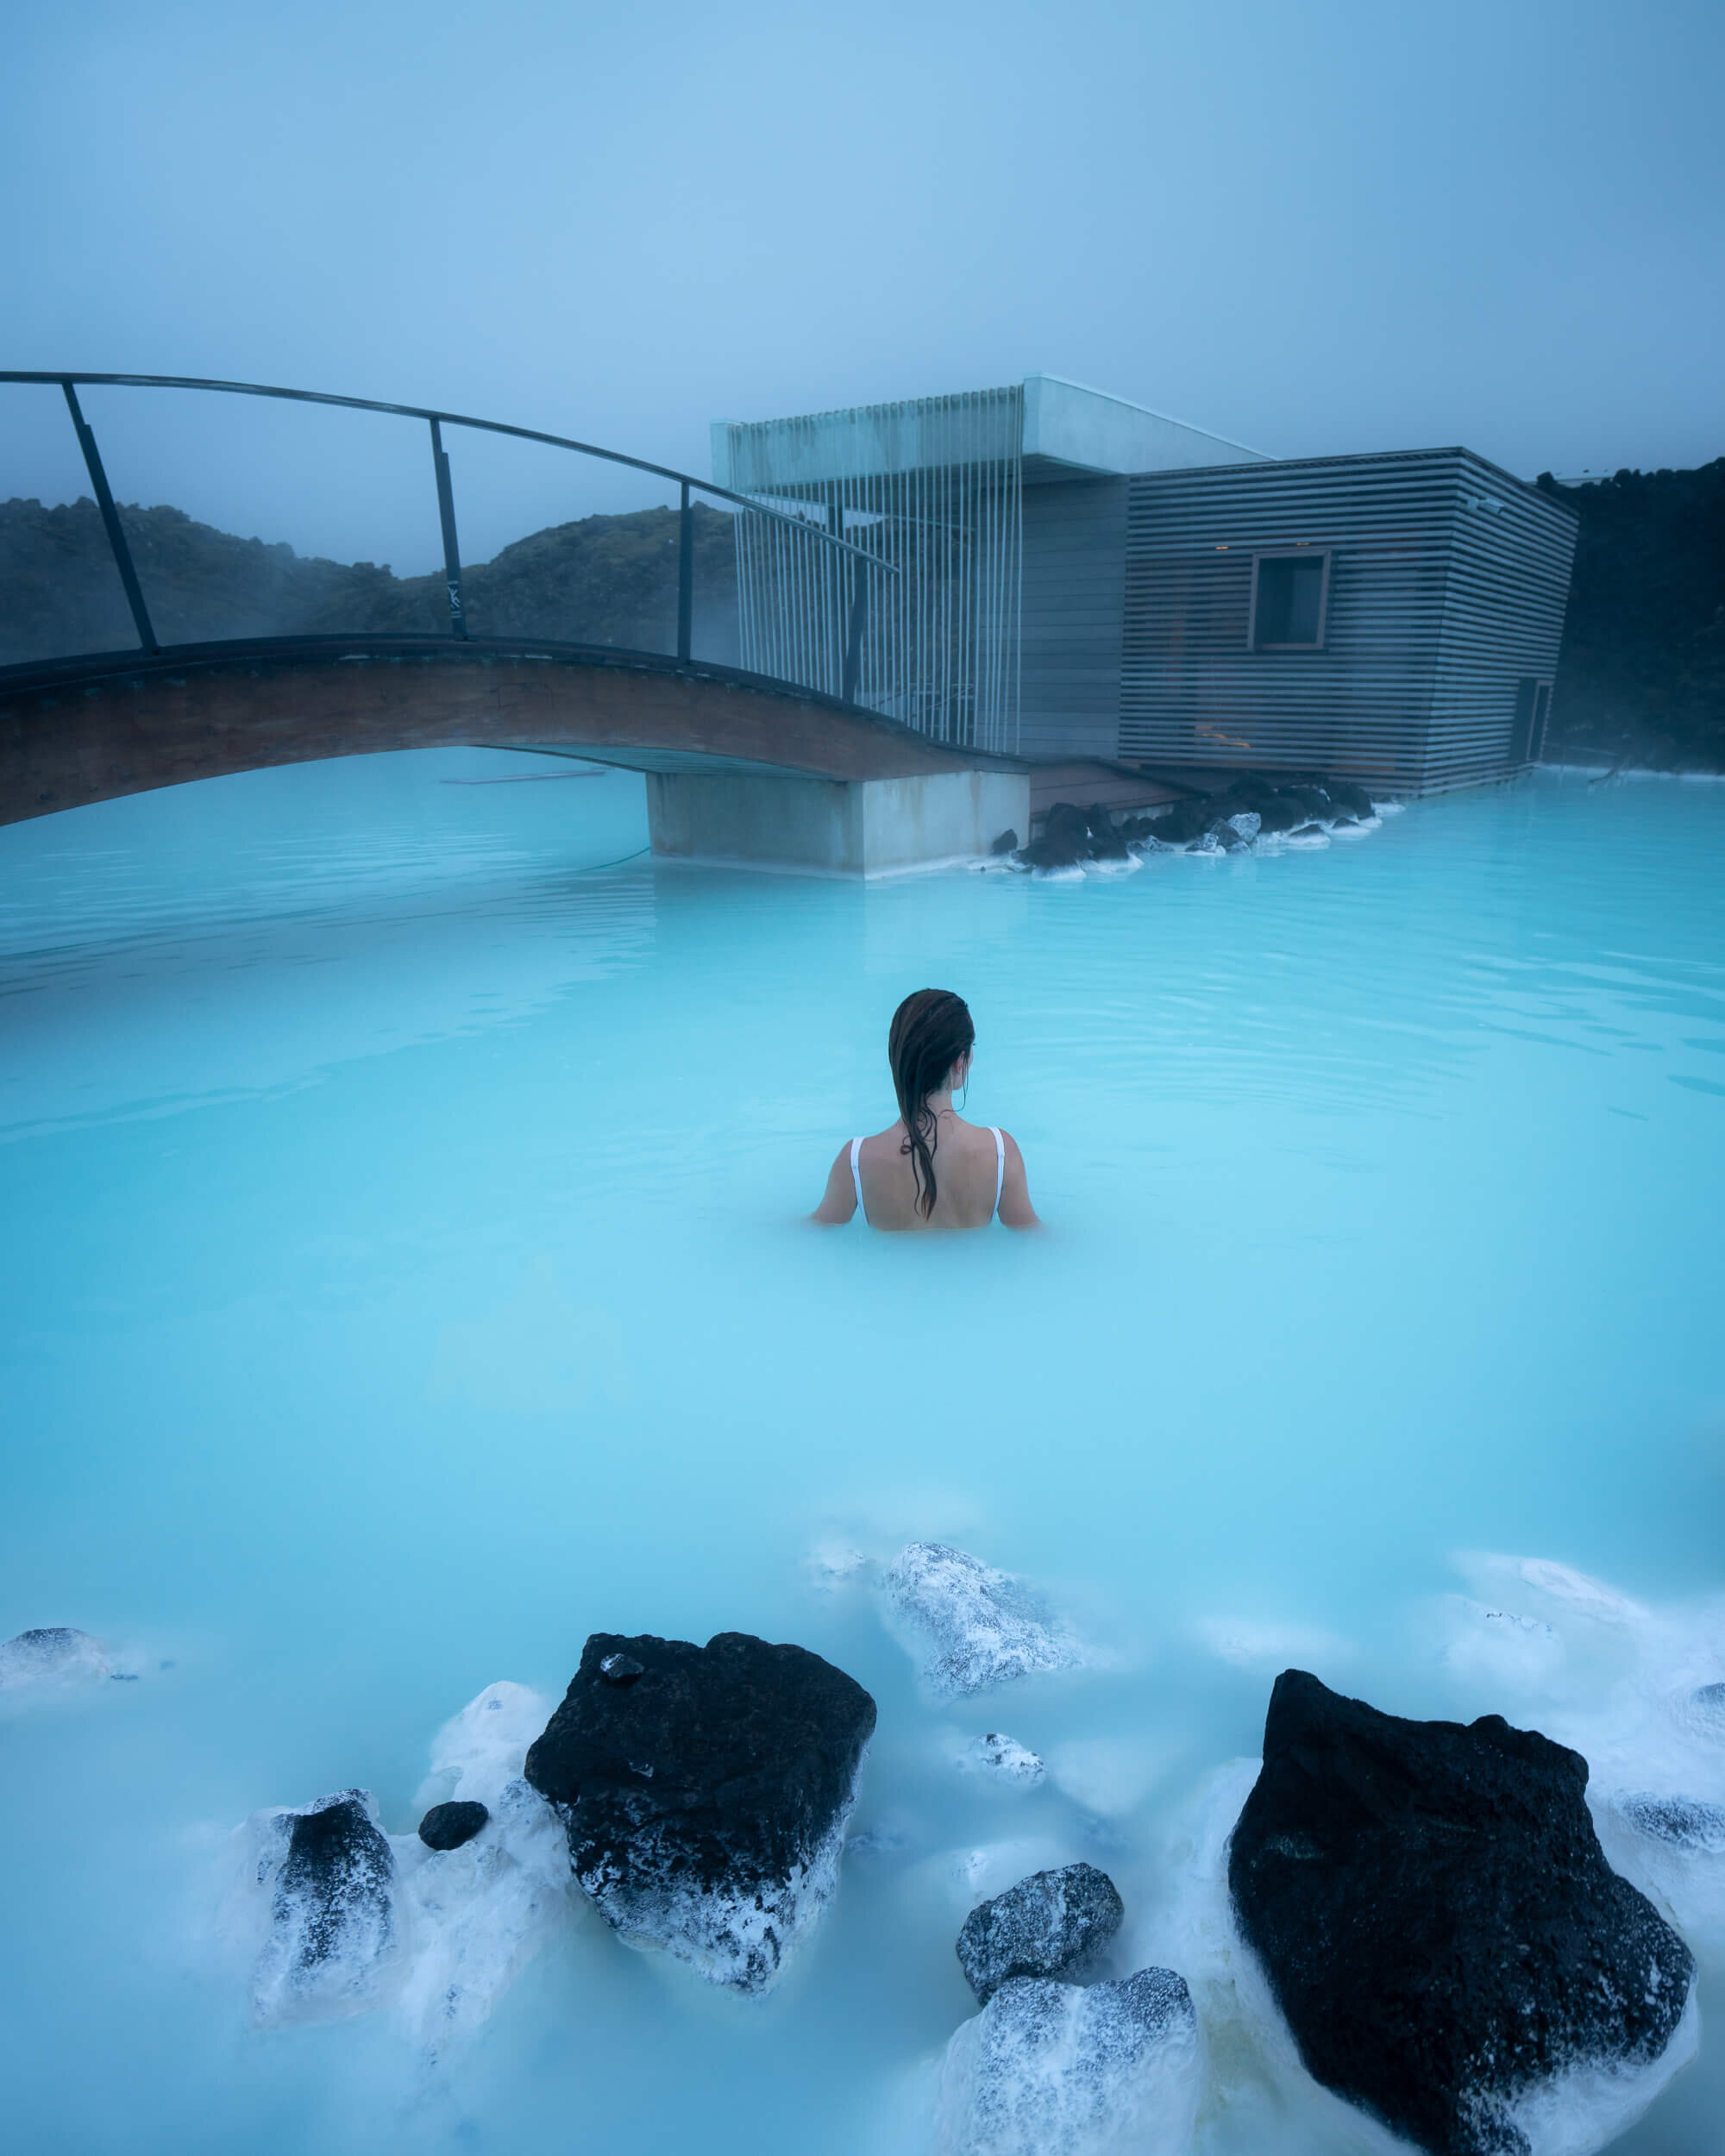 Relaxing at the Blue Lagoon Geothermal Spa before heading to the airport.